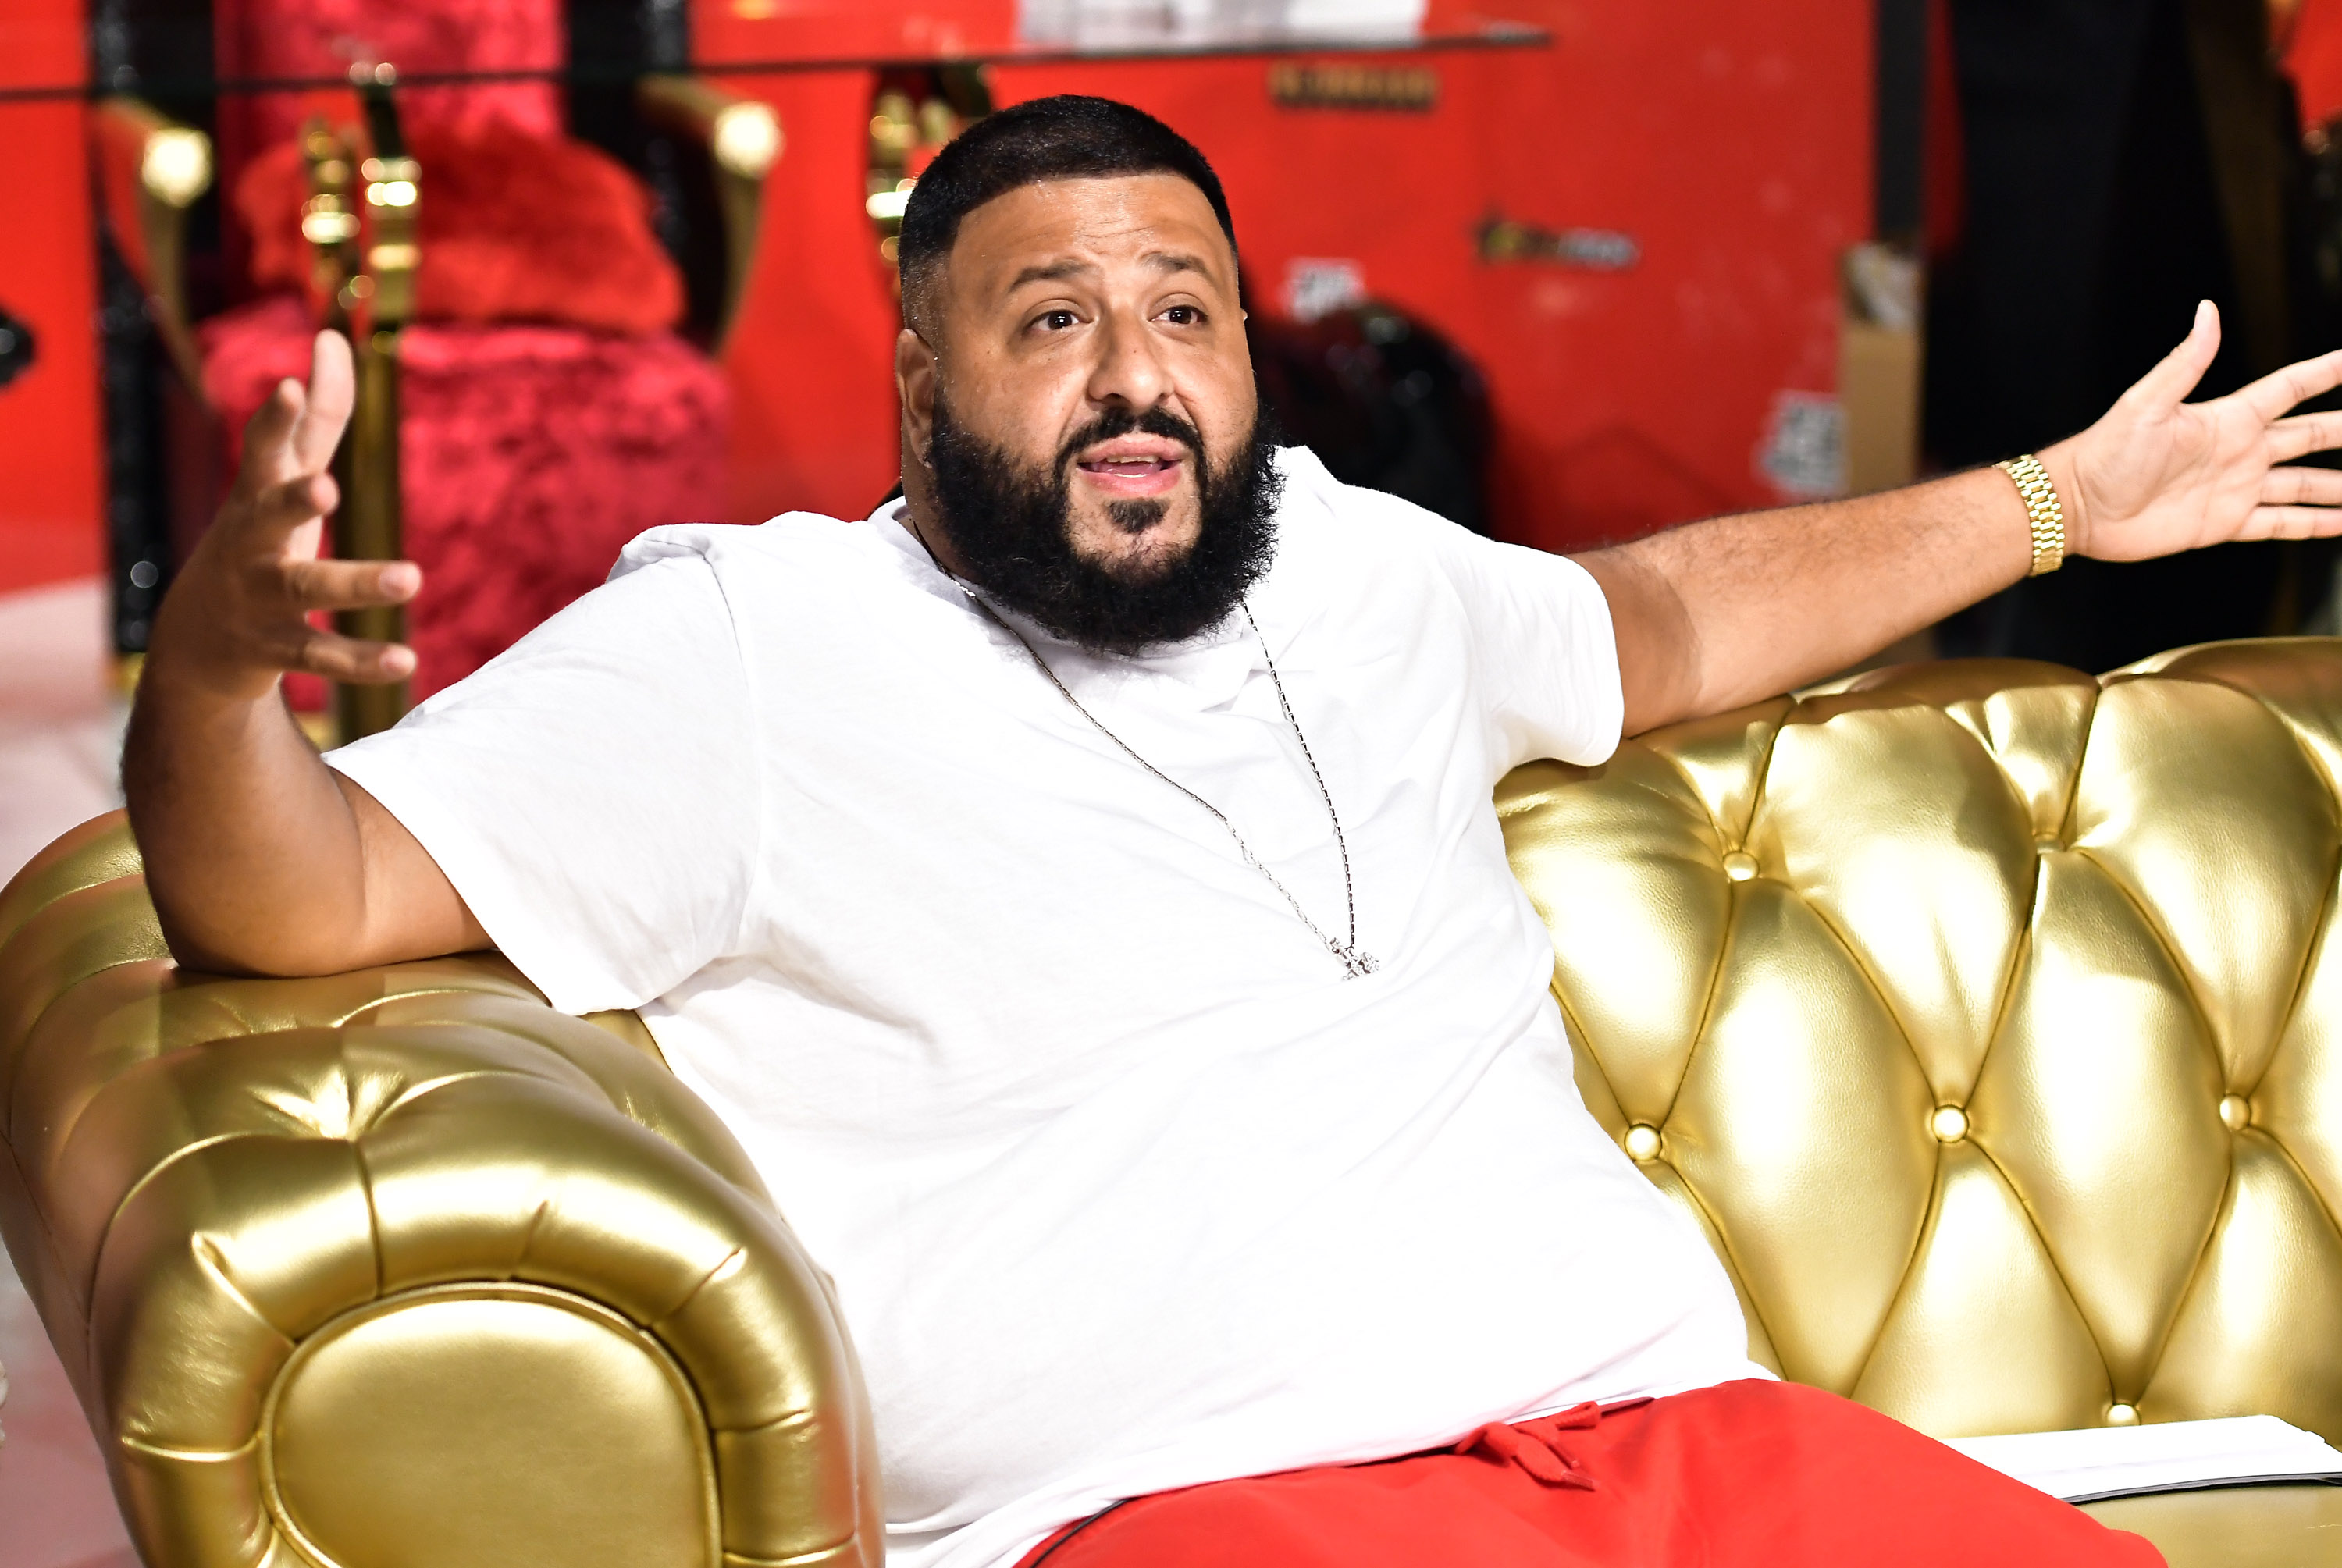 Stadium Goods credits DJ Khaled with important lessons on customer relationships.